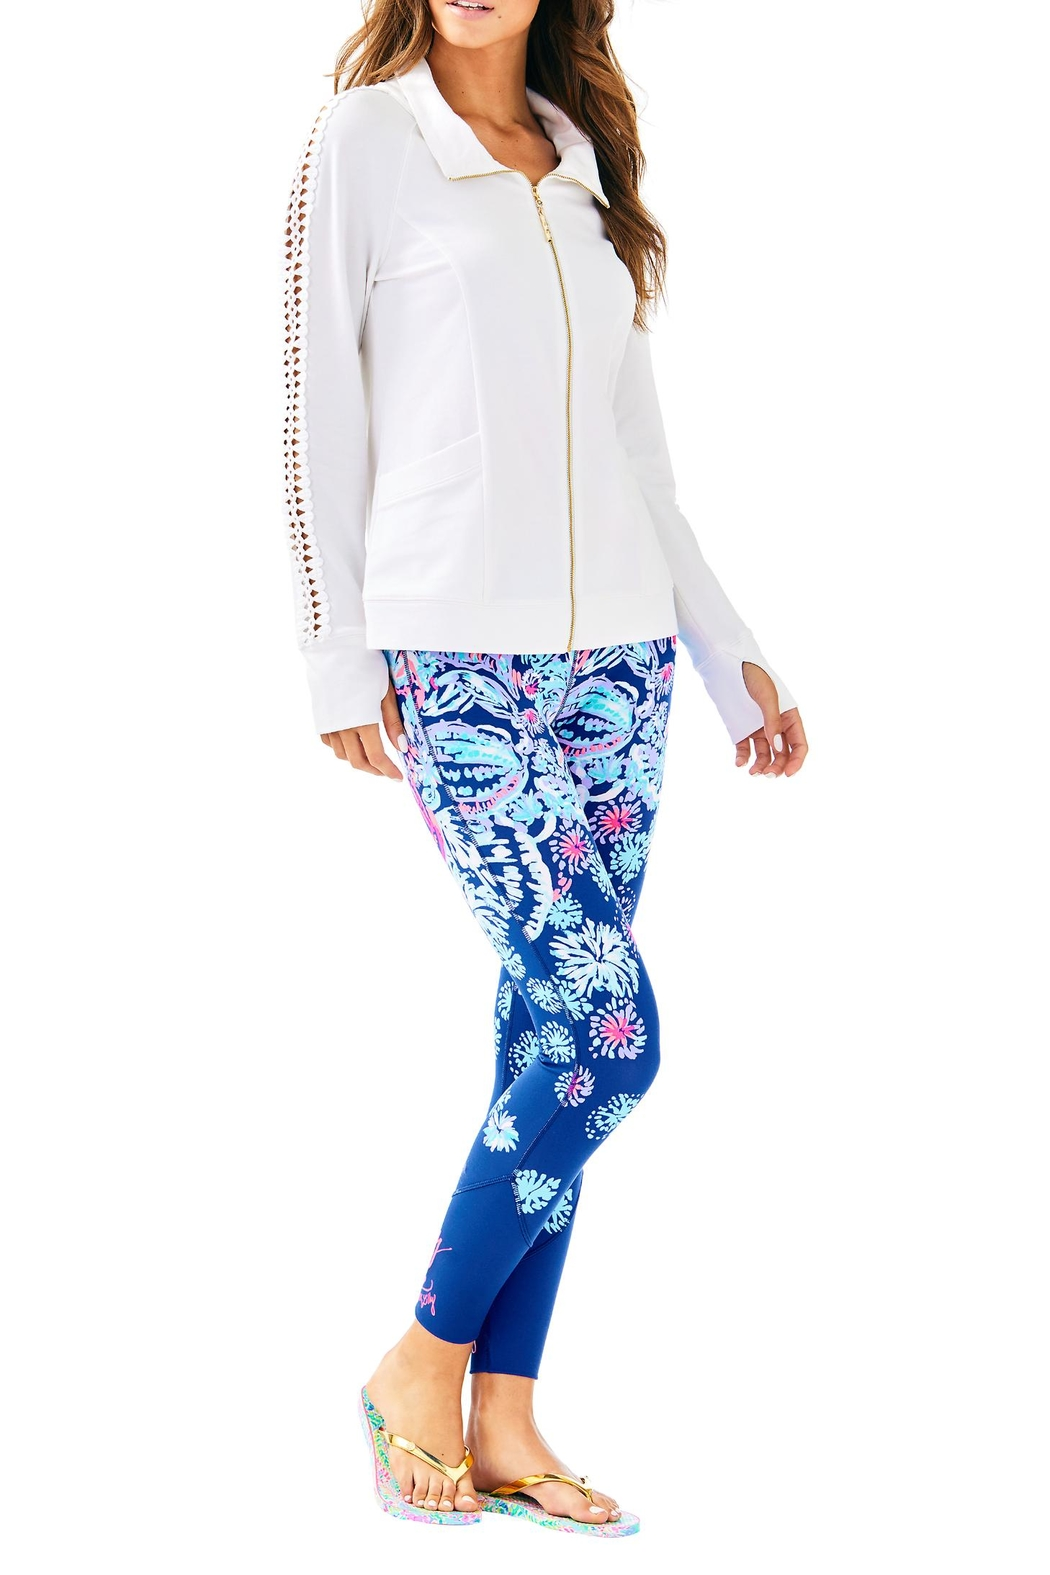 Lilly Pulitzer Brigantine Zip Up - Main Image